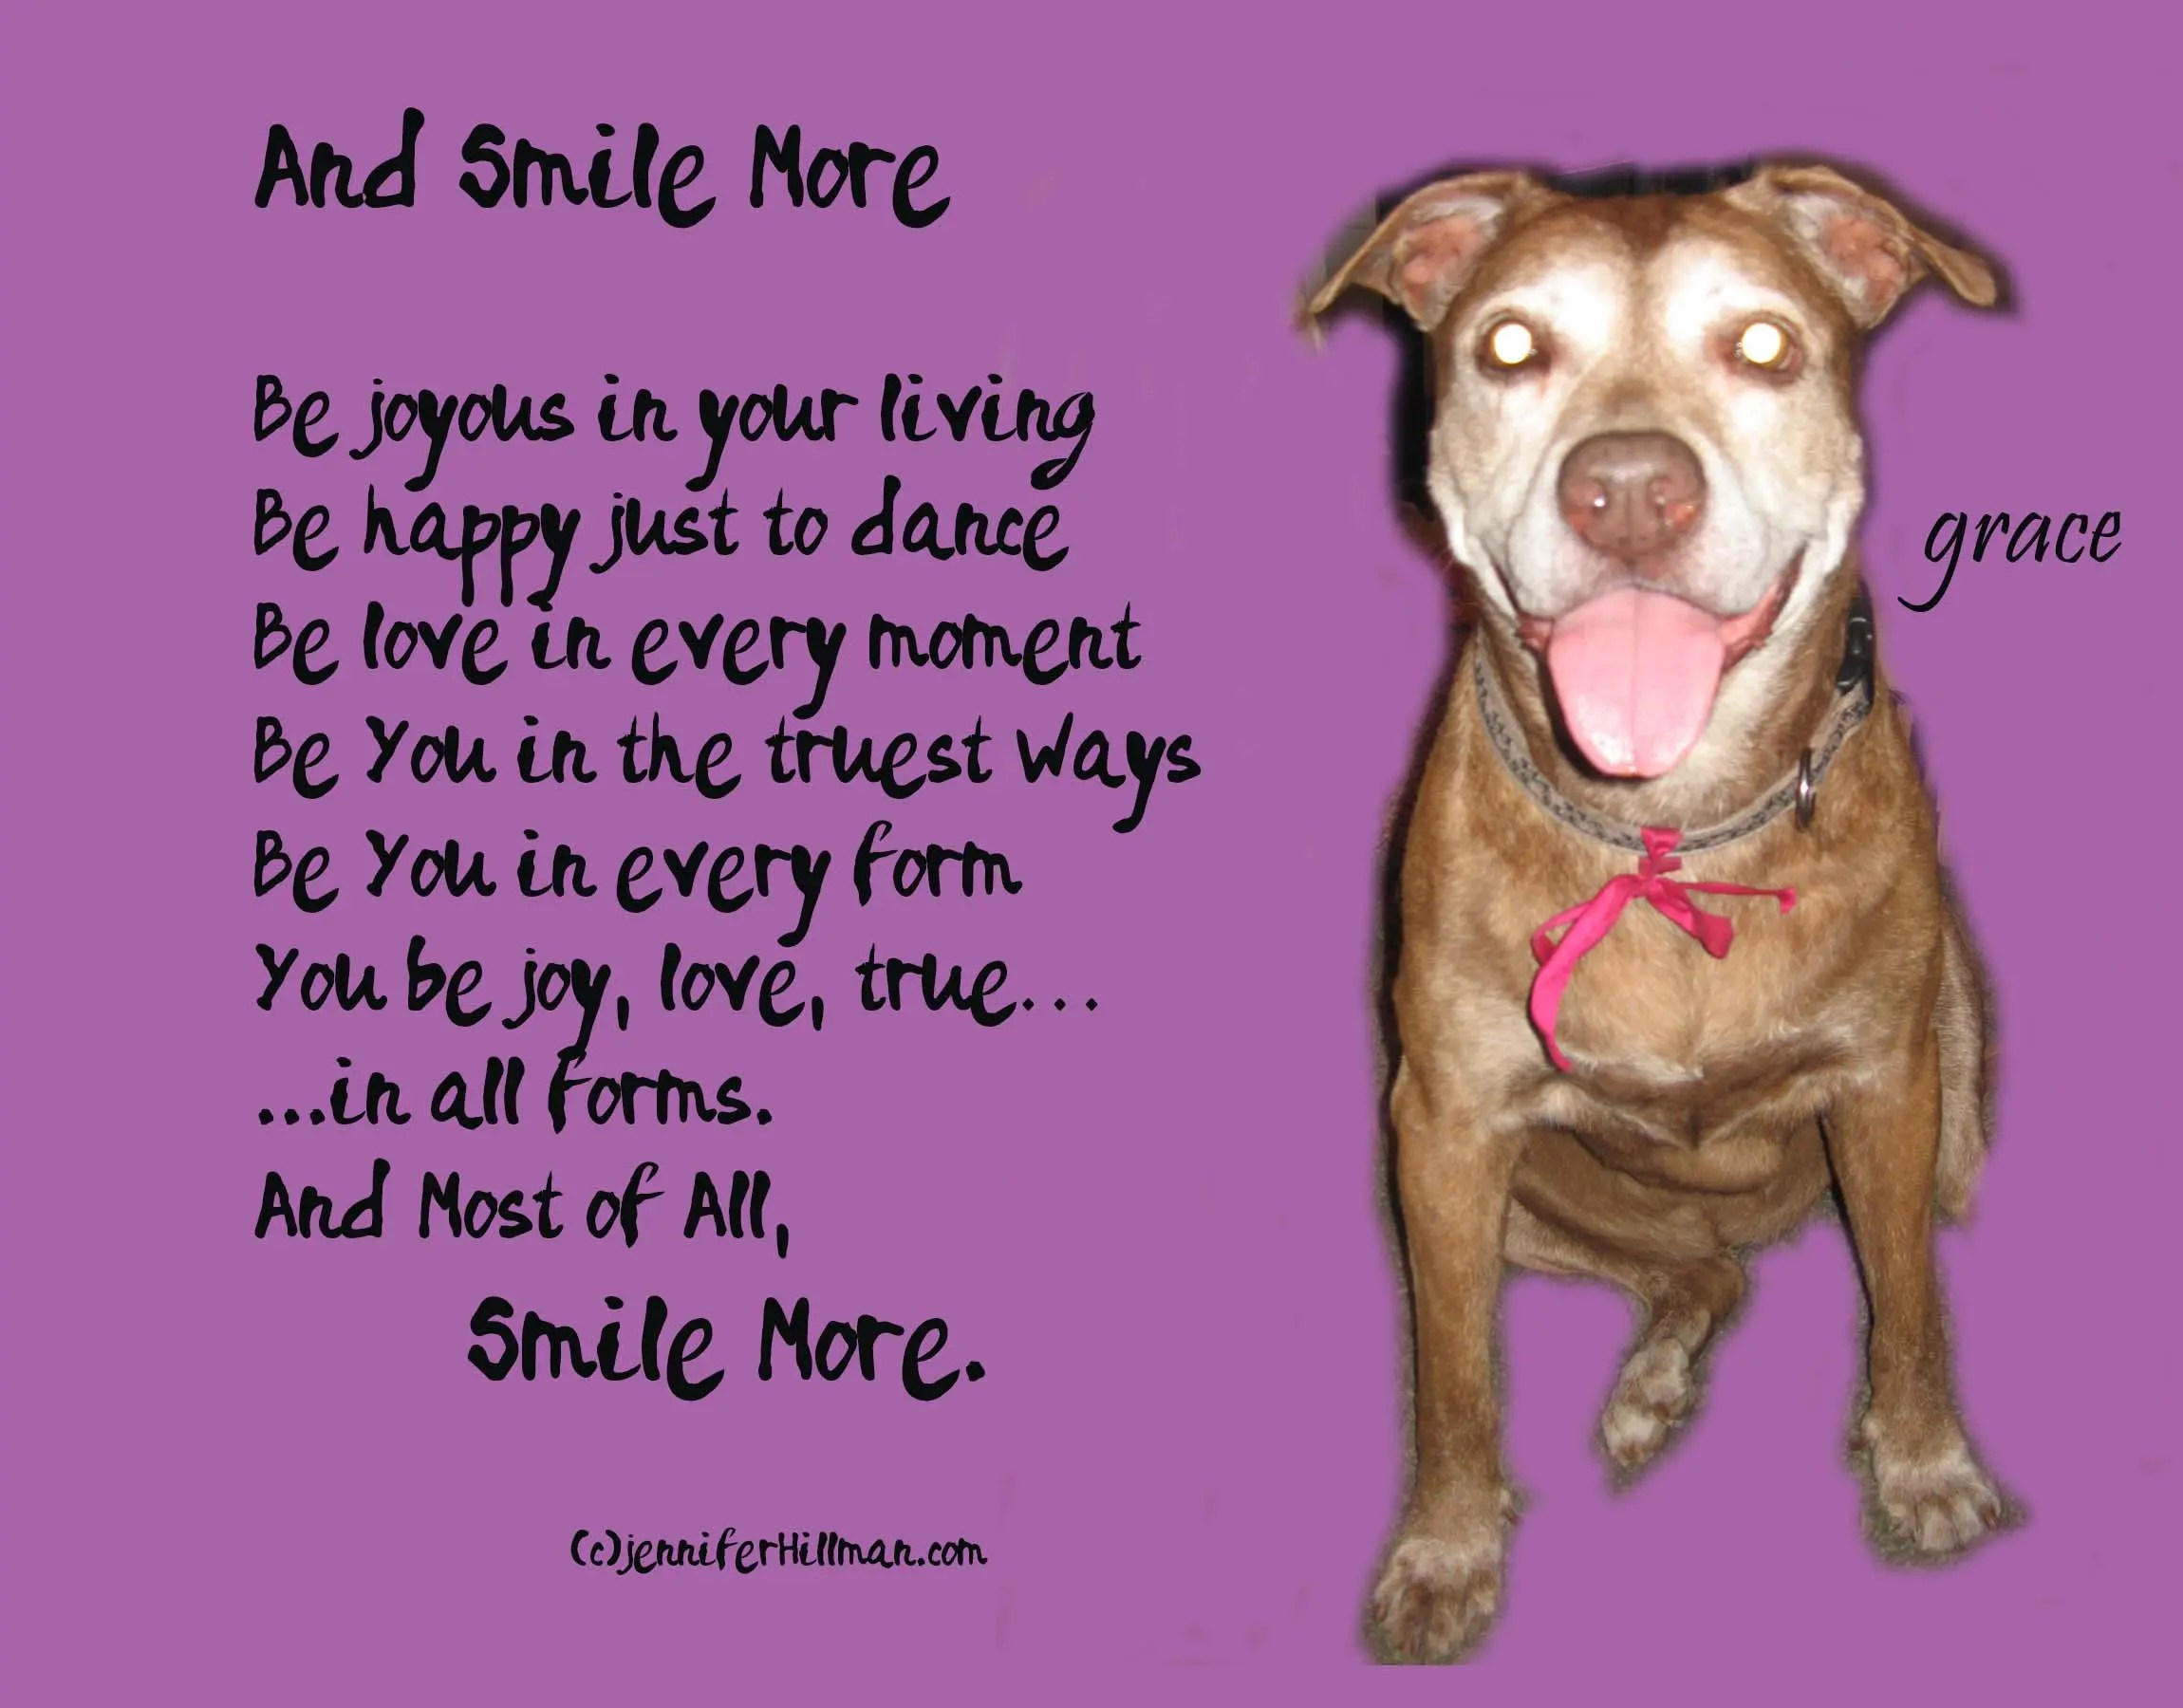 And Smile More….